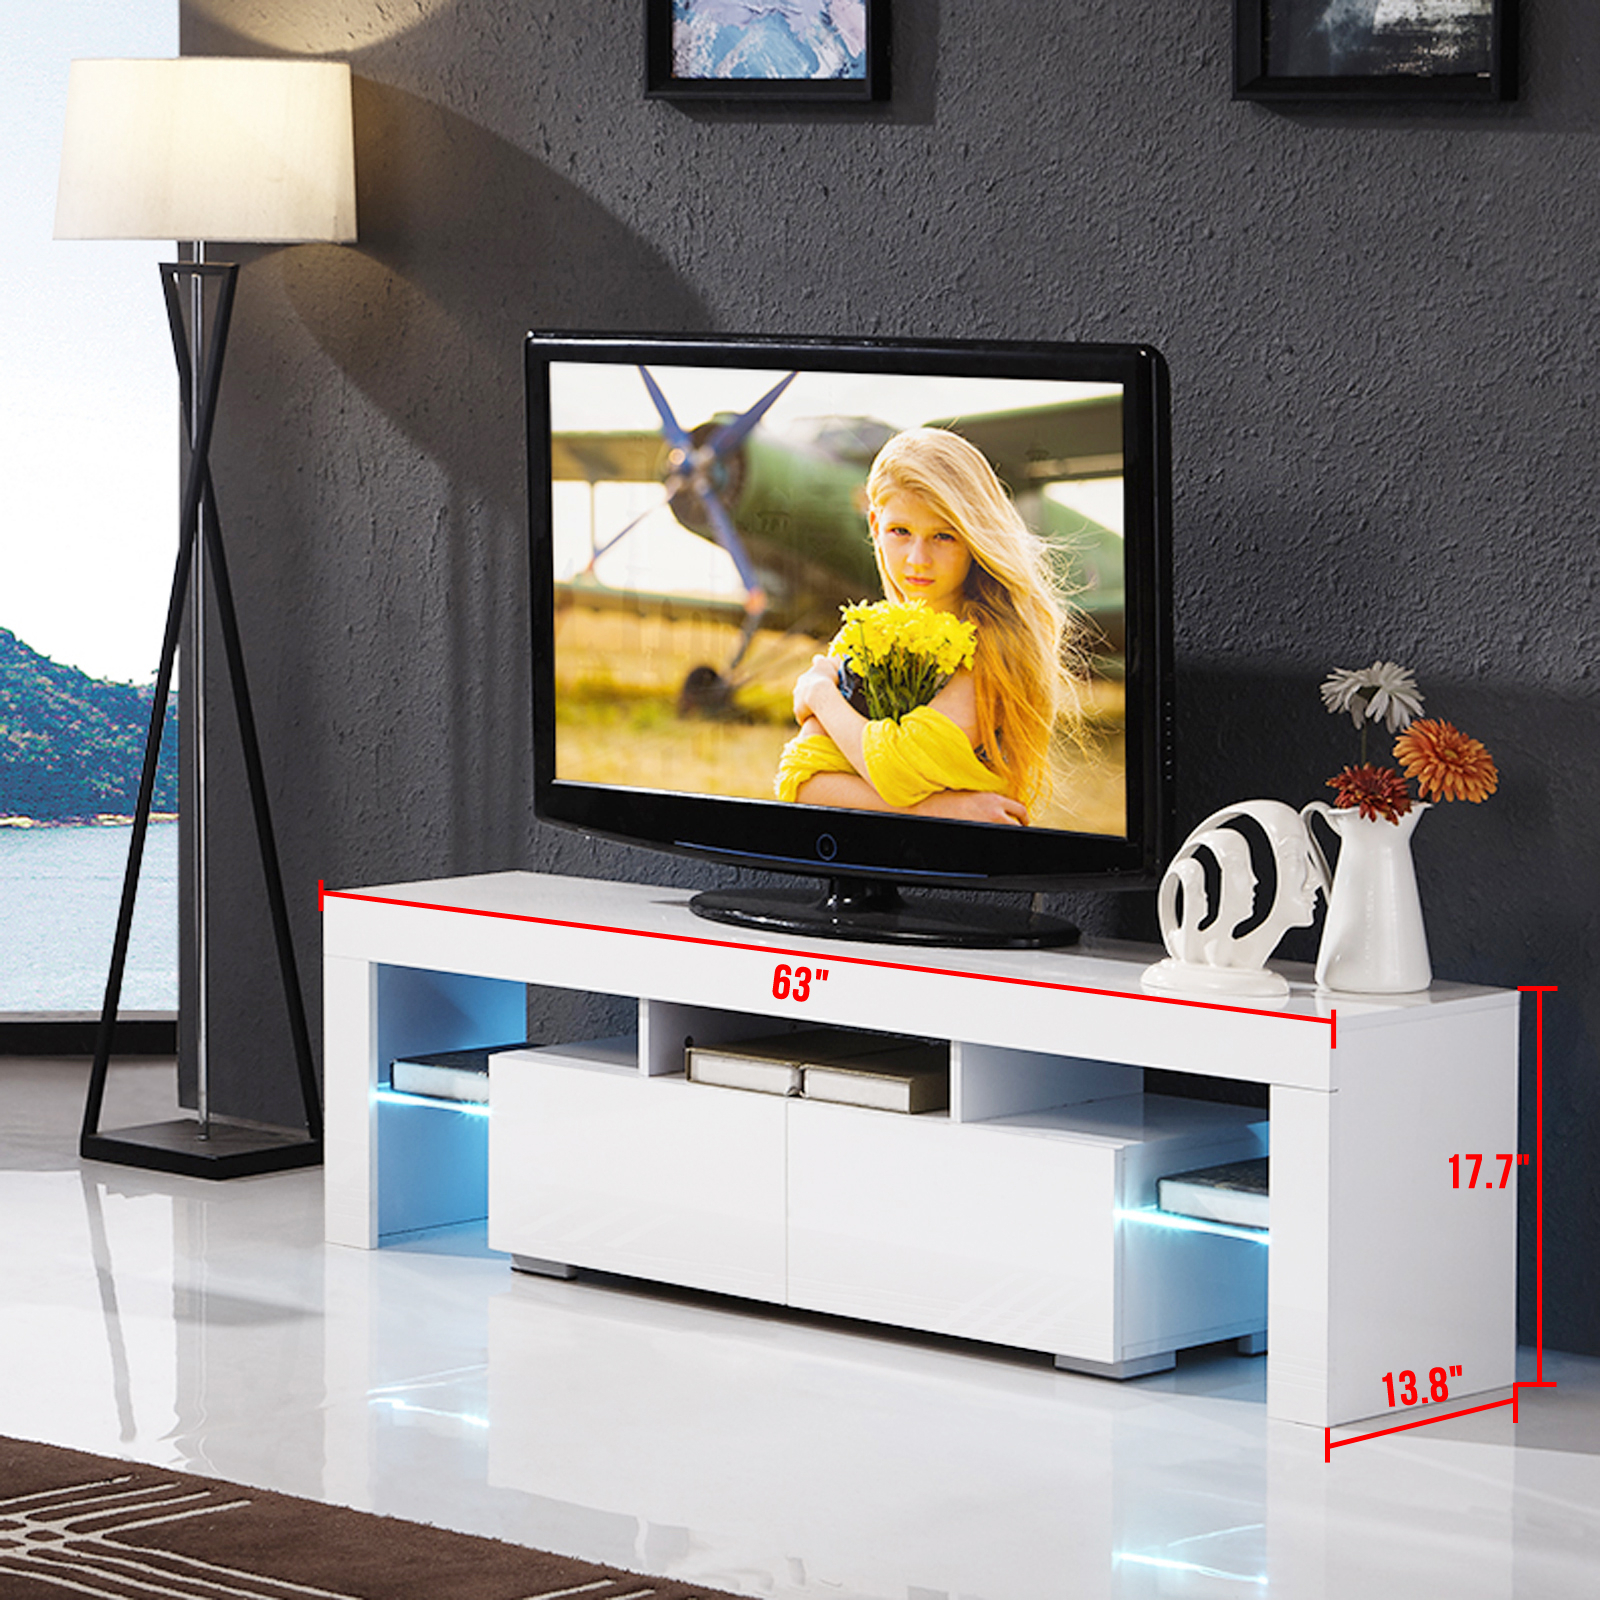 High Gloss White Tv Stand Unit Cabinet W/led Shelves 2 With Tv Stands With 2 Open Shelves 2 Drawers High Gloss Tv Unis (View 1 of 15)